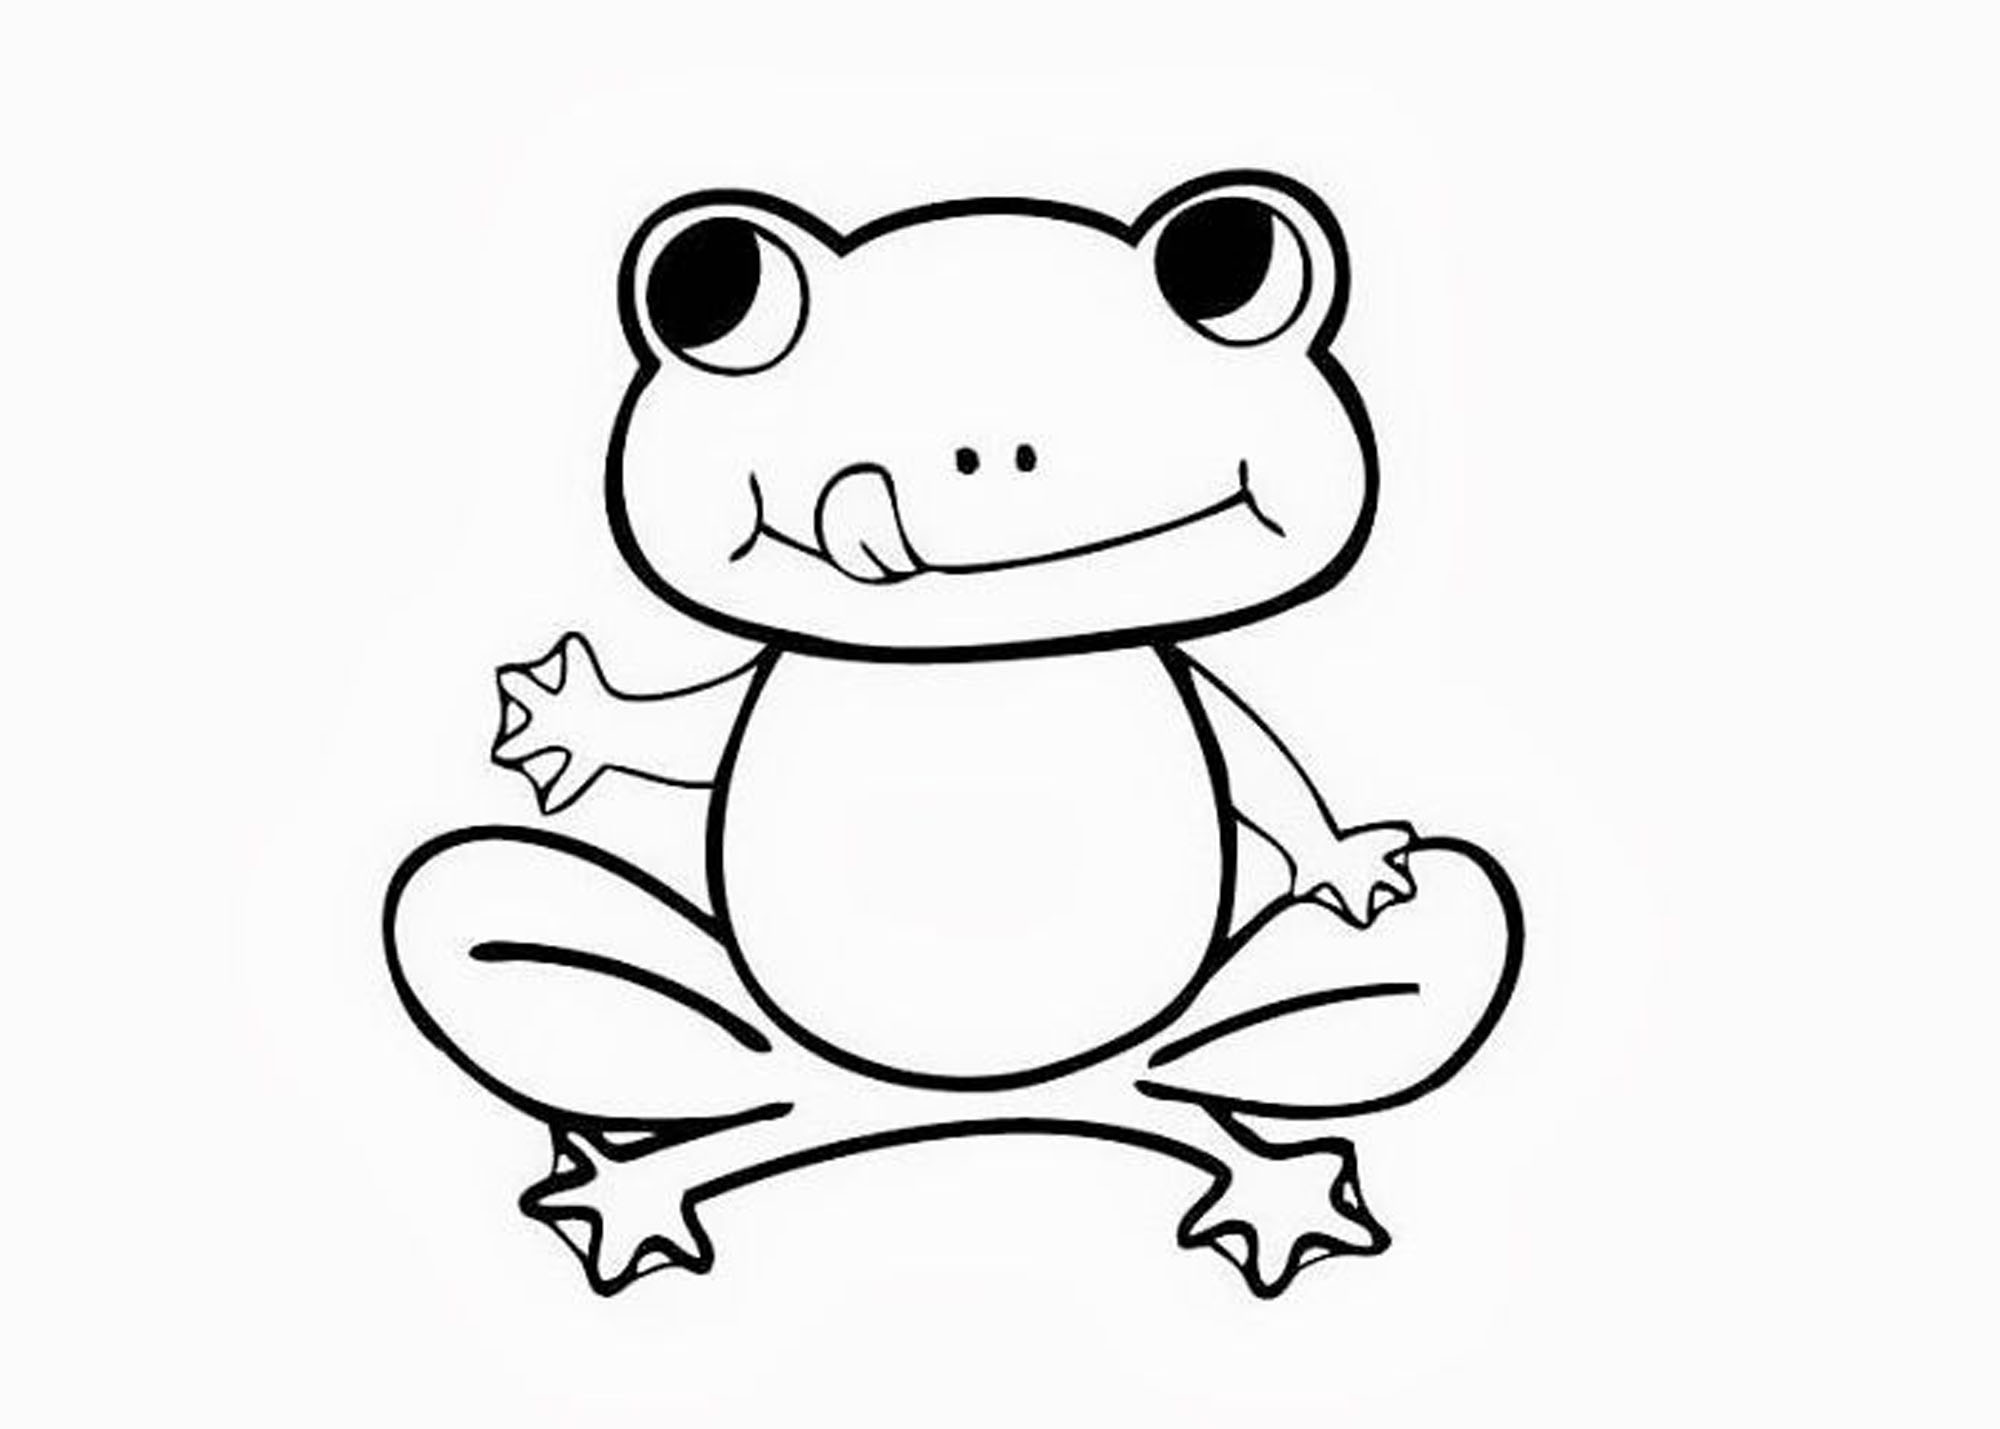 frog to color realistic frog drawing at getdrawings free download frog color to